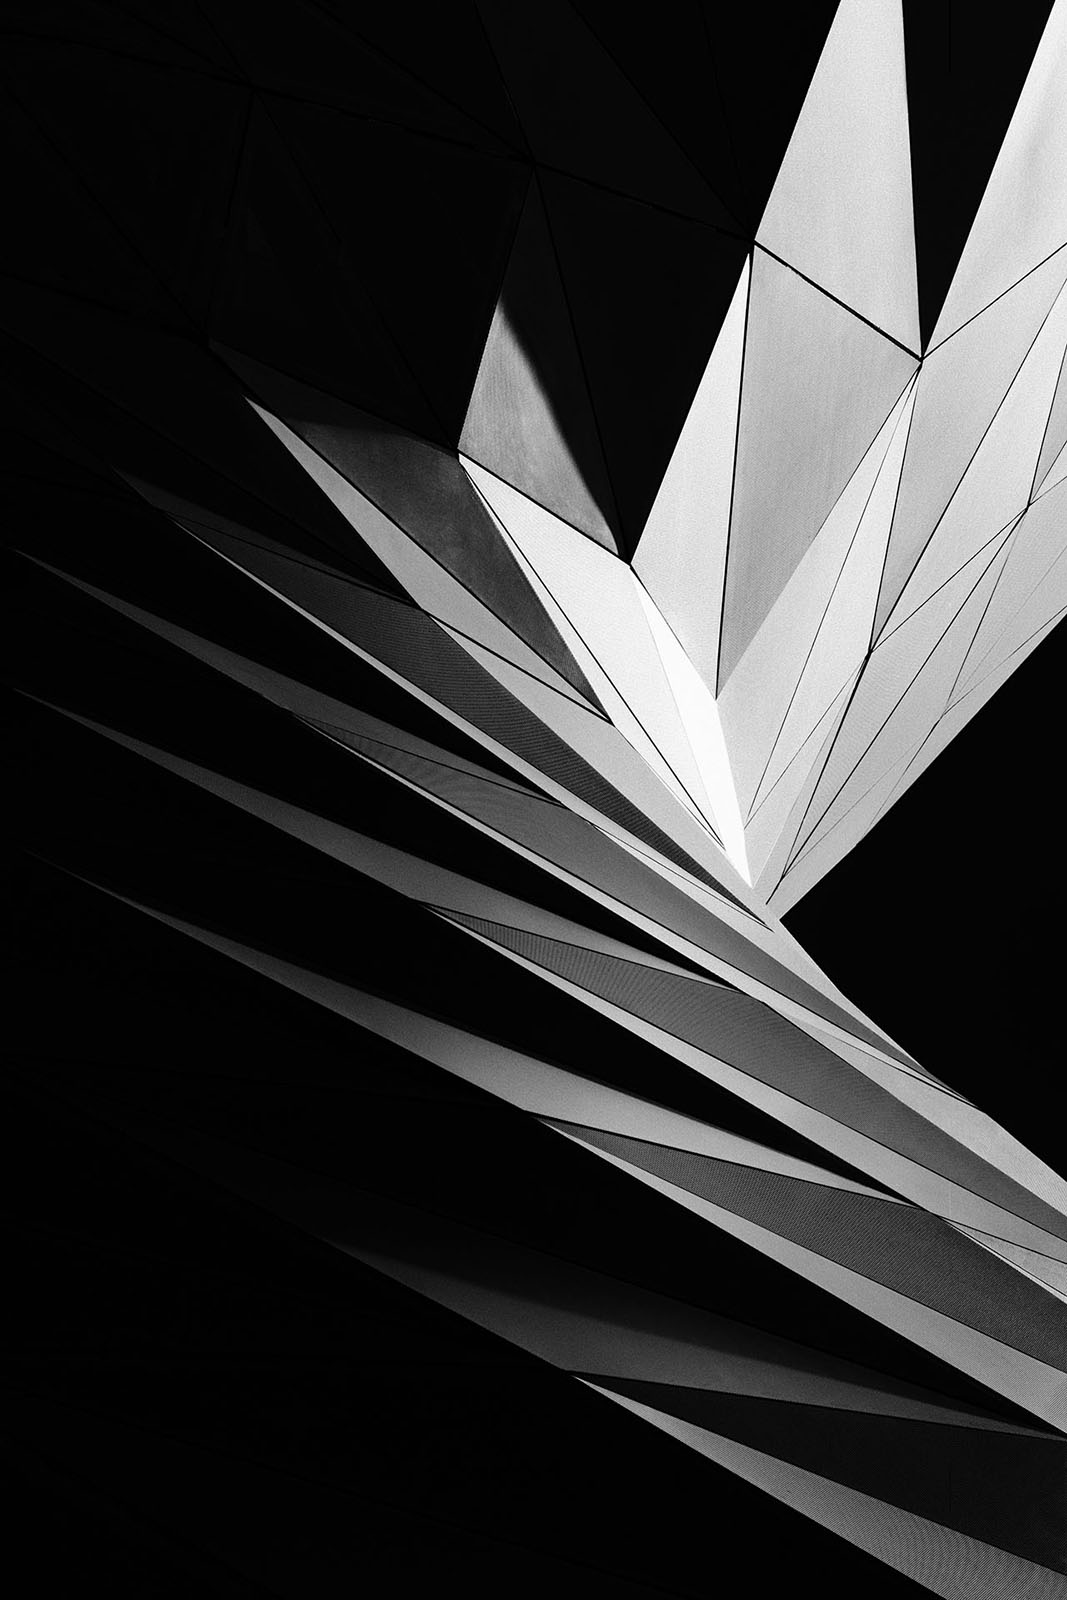 BMW World, Munich, Germany - Wolf Prix, Coop Himmelb(l)au - Game of Shapes - Black & White Fine Art Architecture Series